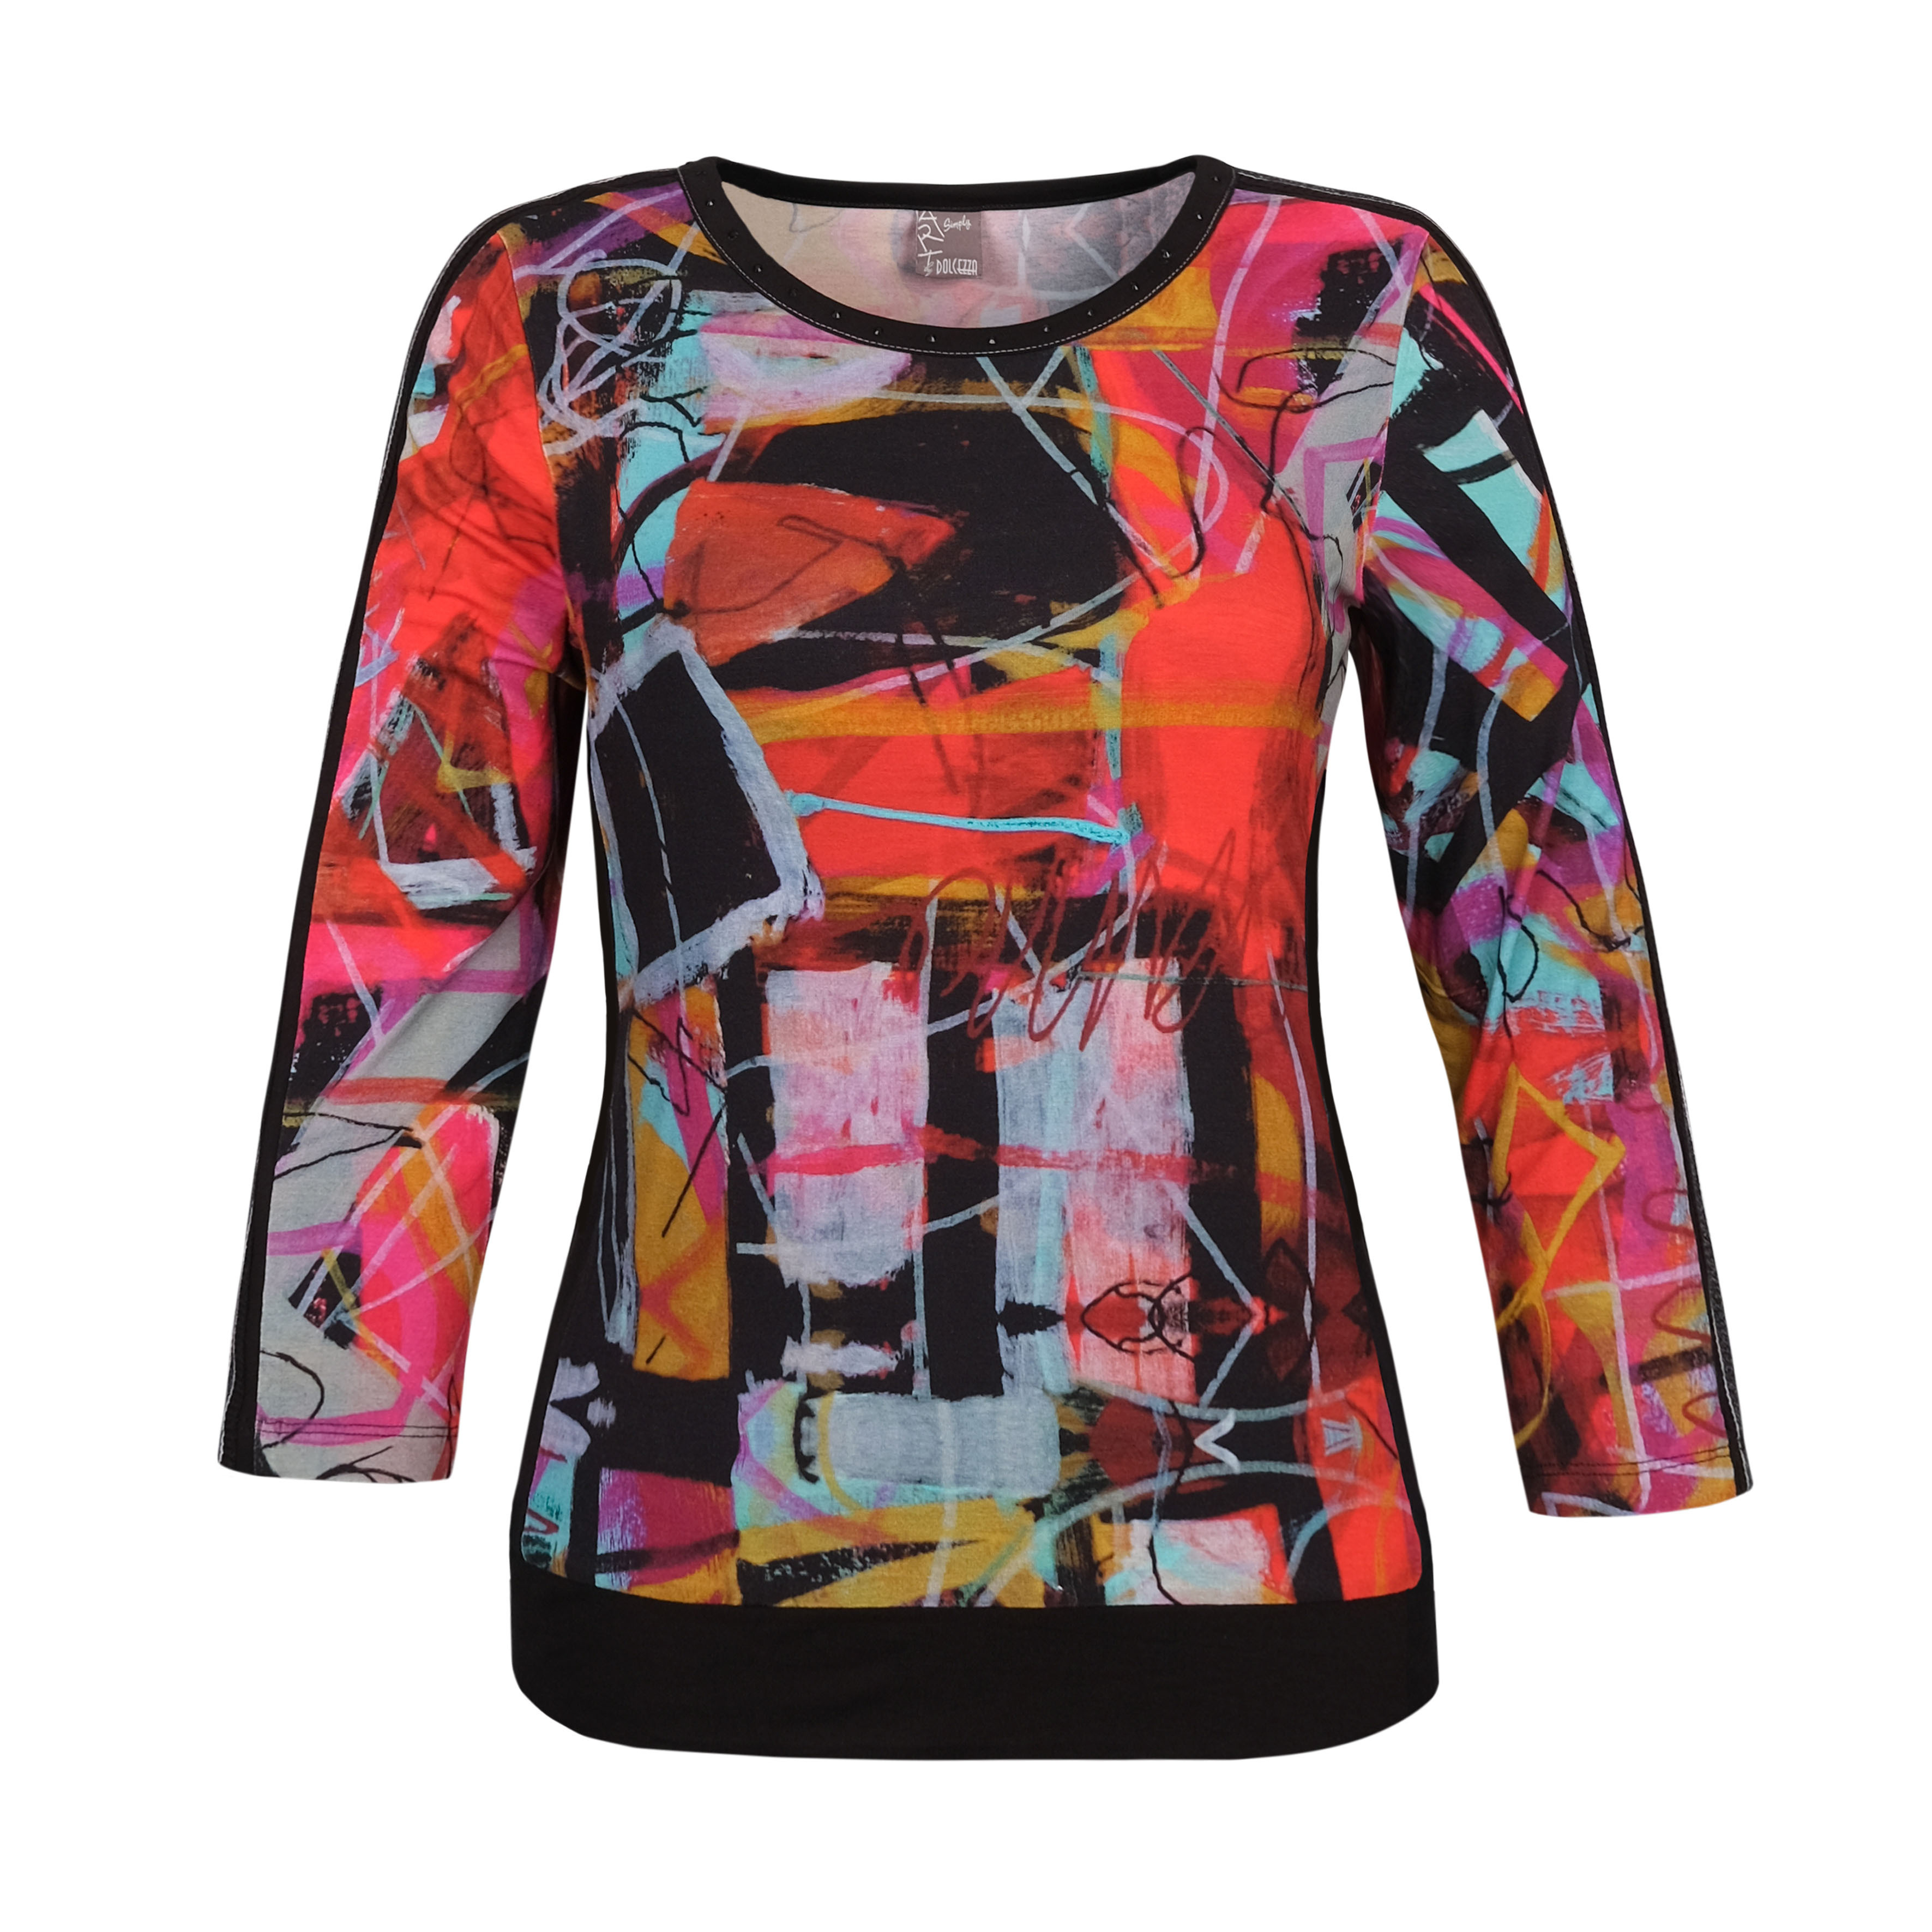 Simply Art Dolcezza: Red 3 Graffiti Abstract Art T-Shirt Dolcezza_SimplyArt_70621